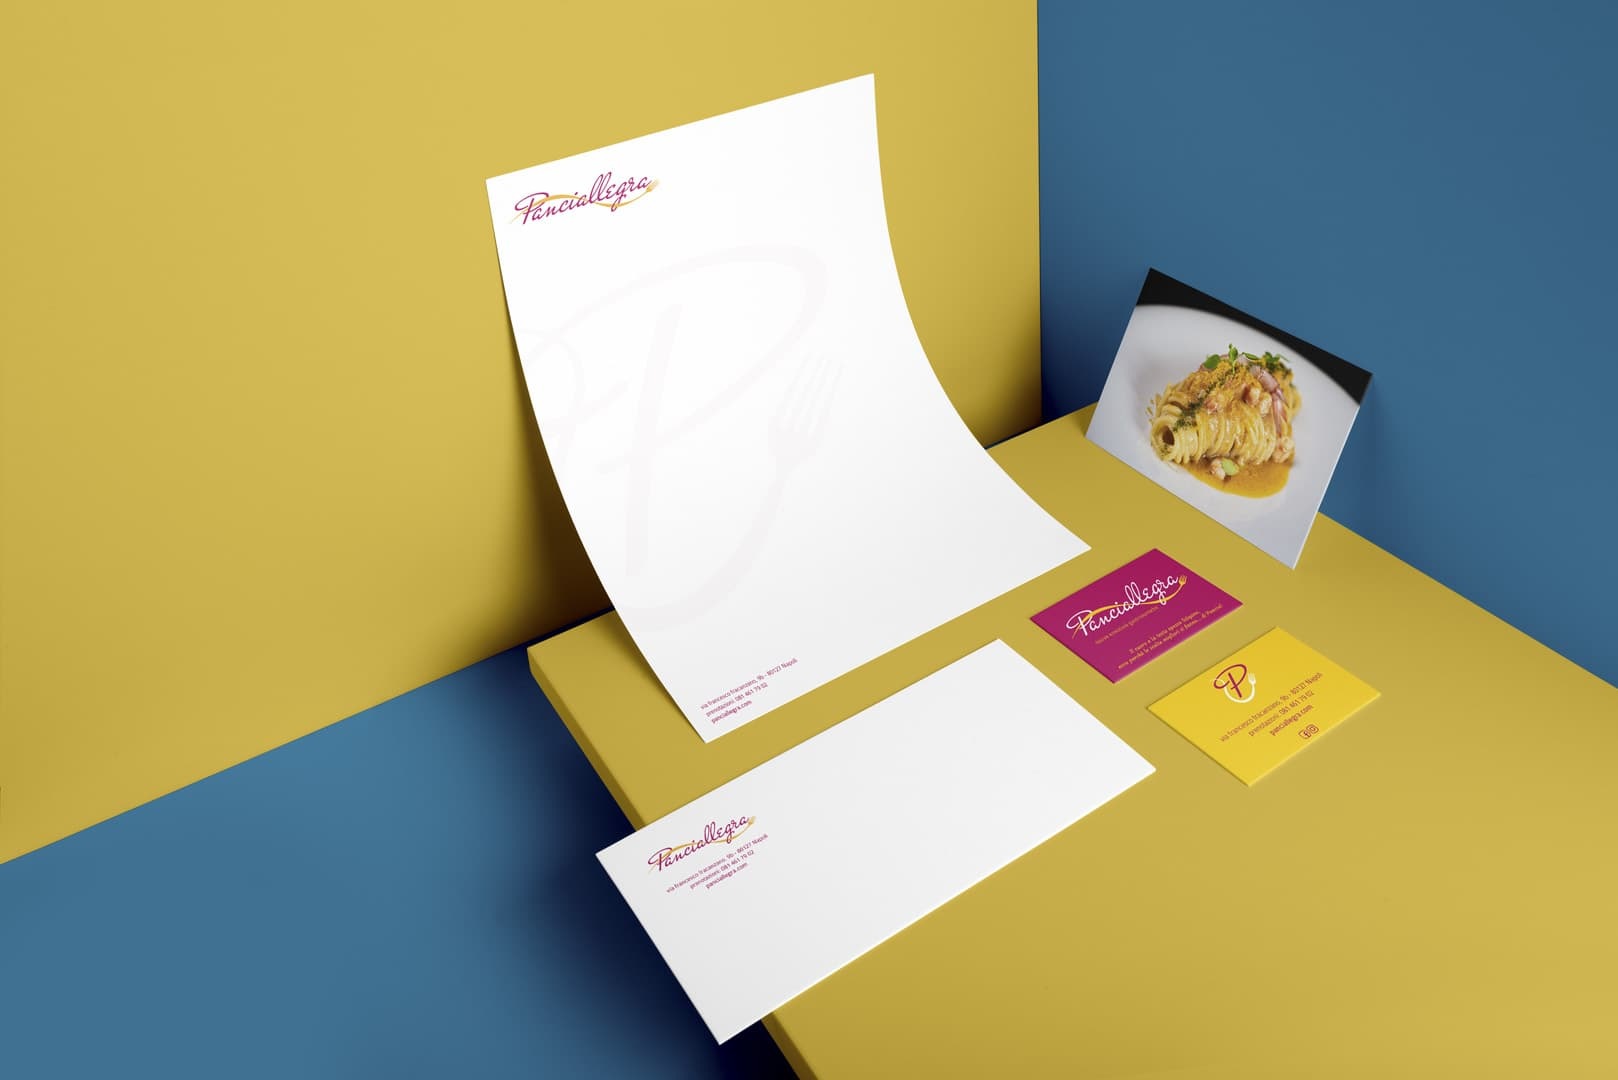 Panciallegra Restaurant - Branding by DelfiAdv.it